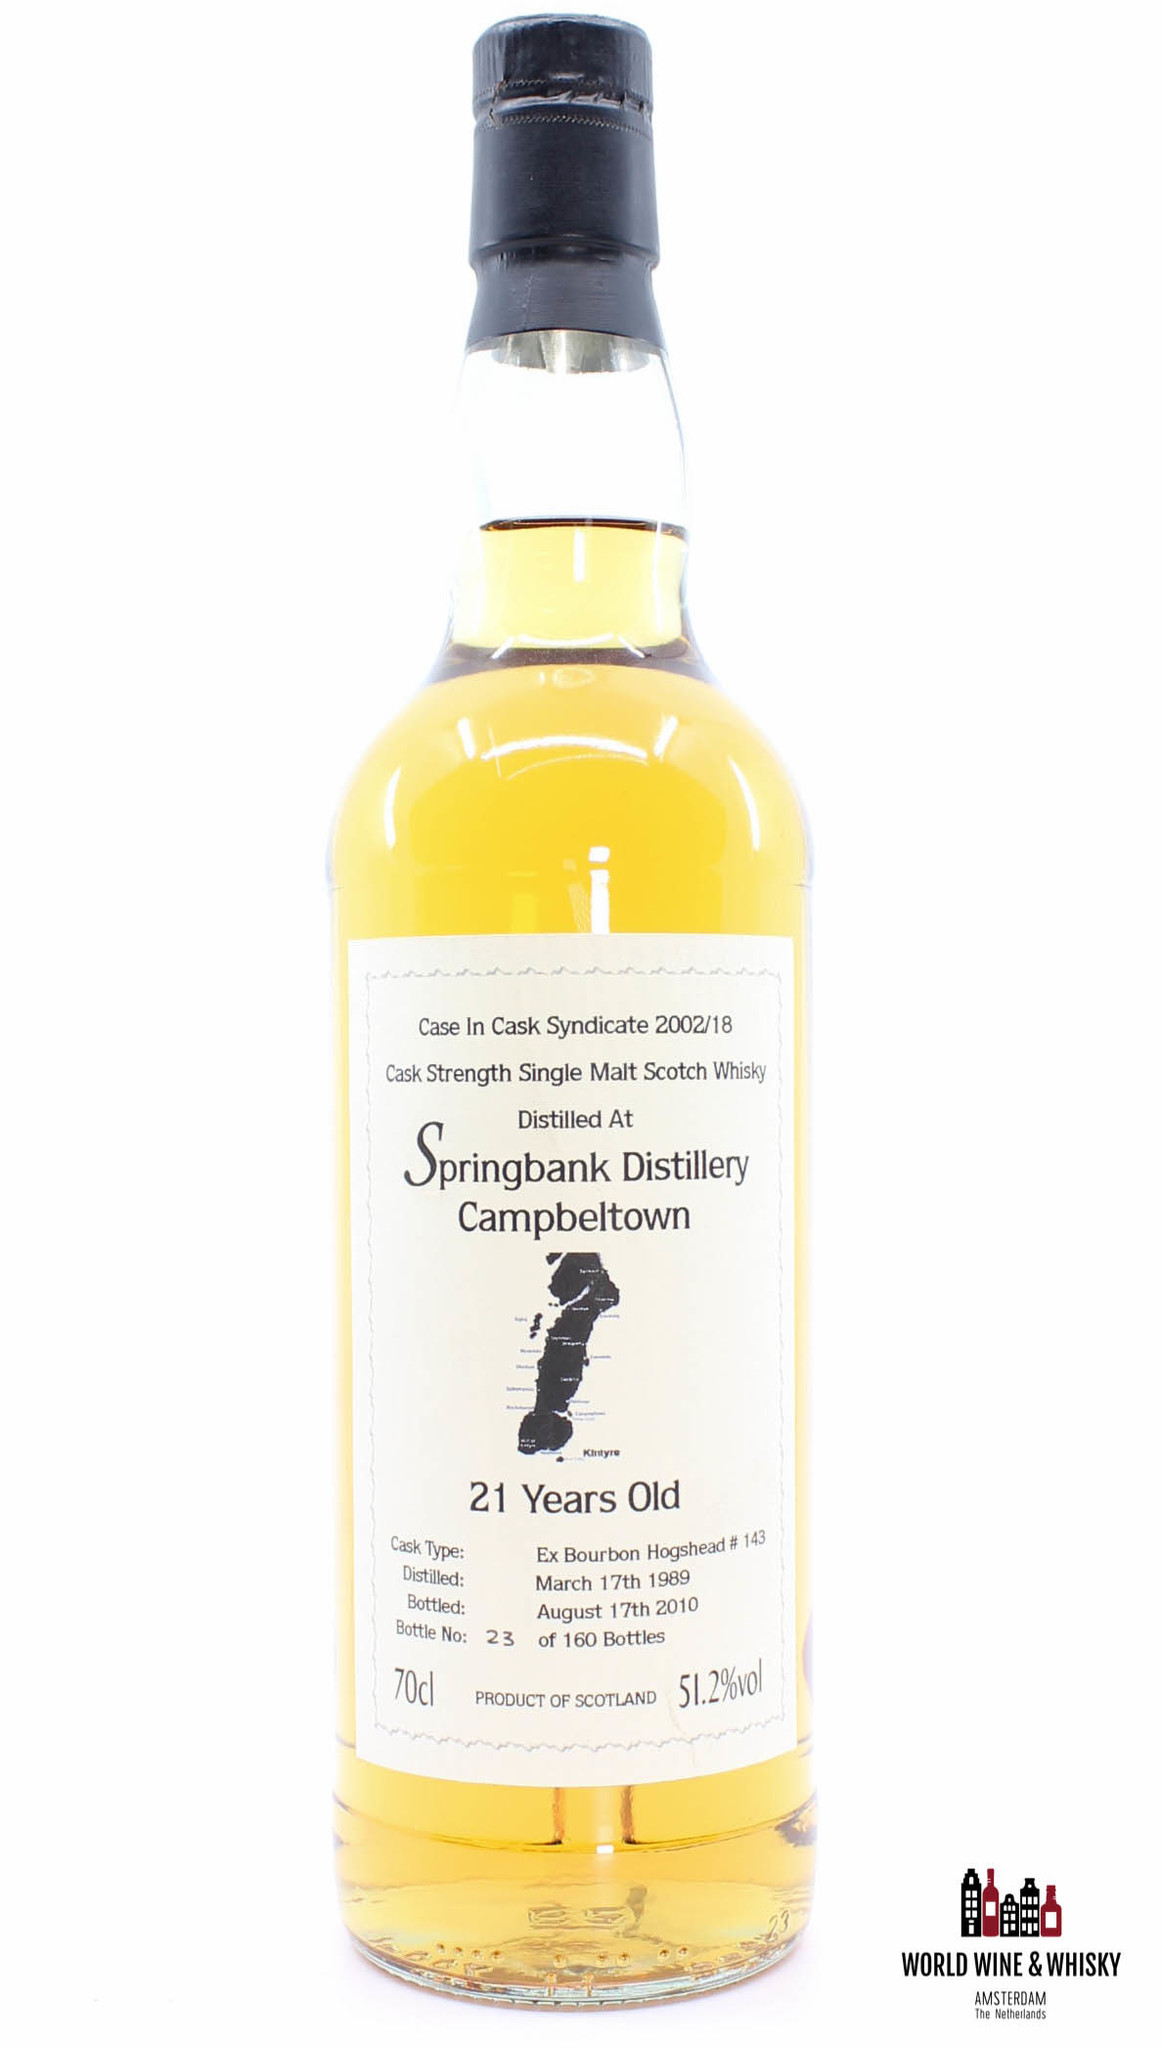 Springbank Springbank 21 Years Old 1989 2010 - Case in Cask Syndicate 2002/18 - Cask 143 51.2%